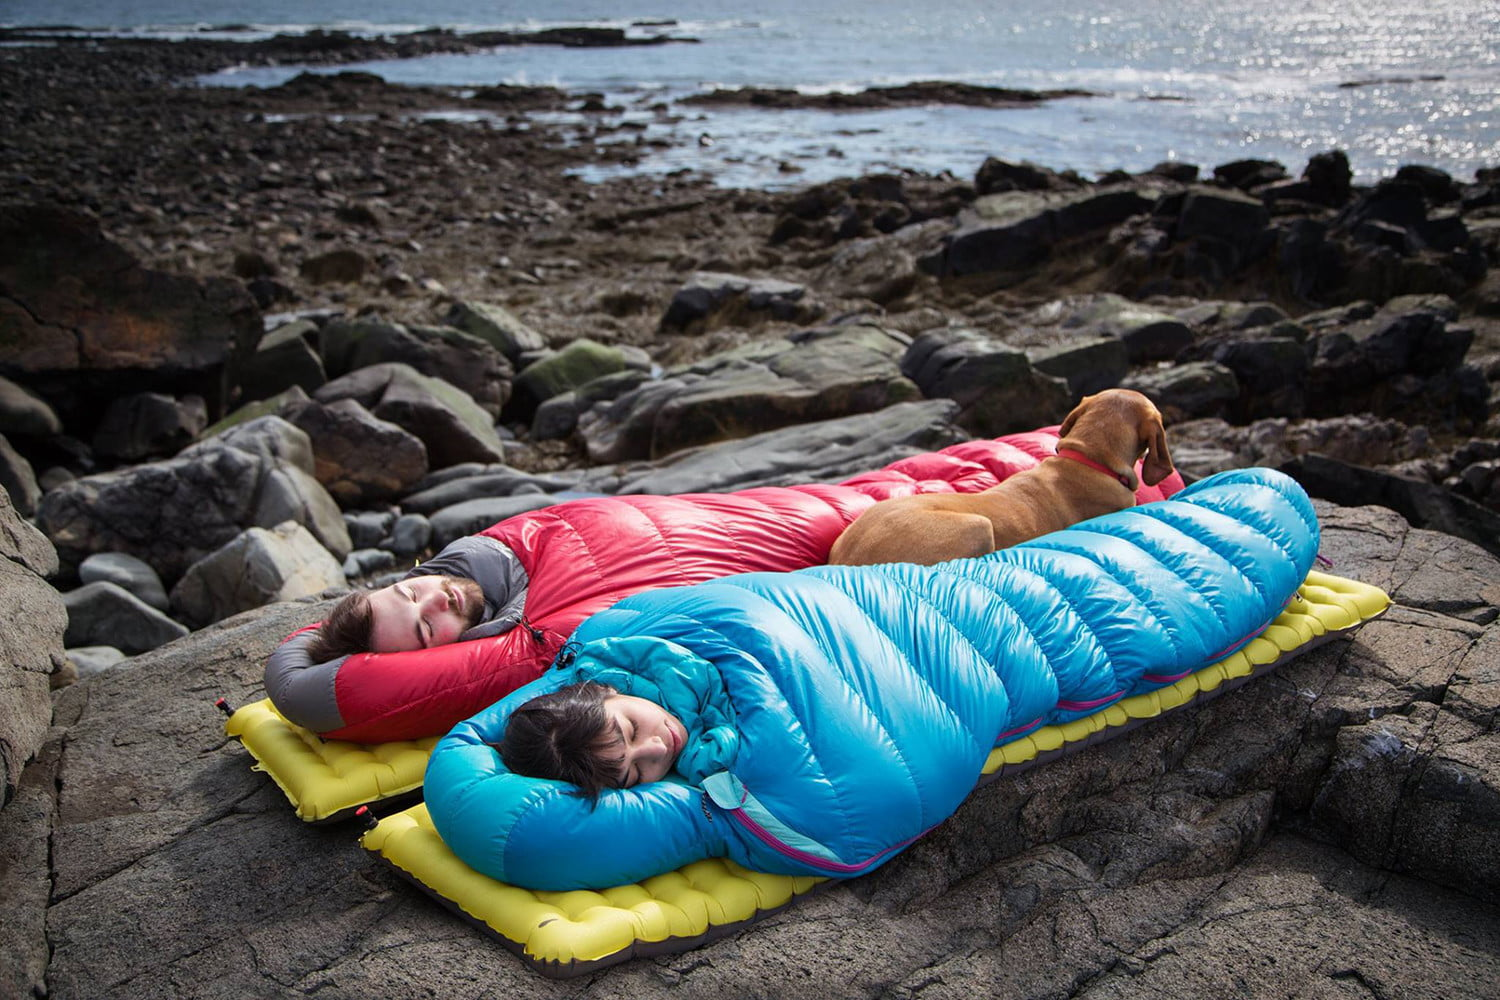 men and women sleeping bags